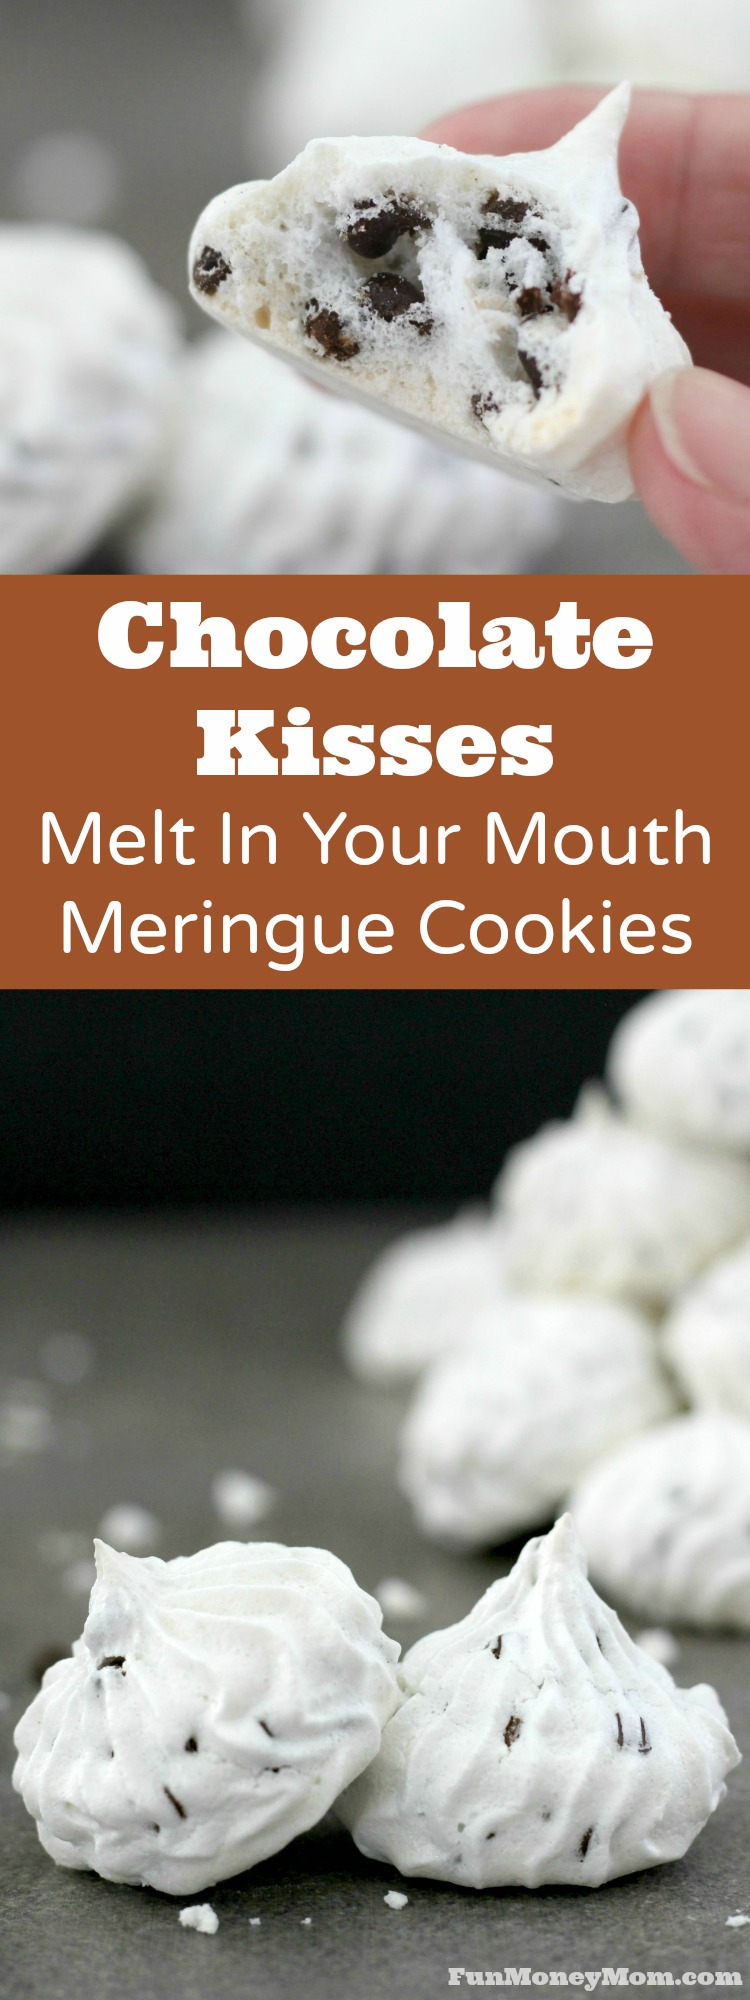 Looking for a unique but absolutely delicious meringue cookie recipe? These Chocolate Kisses are melt in your mouth good!